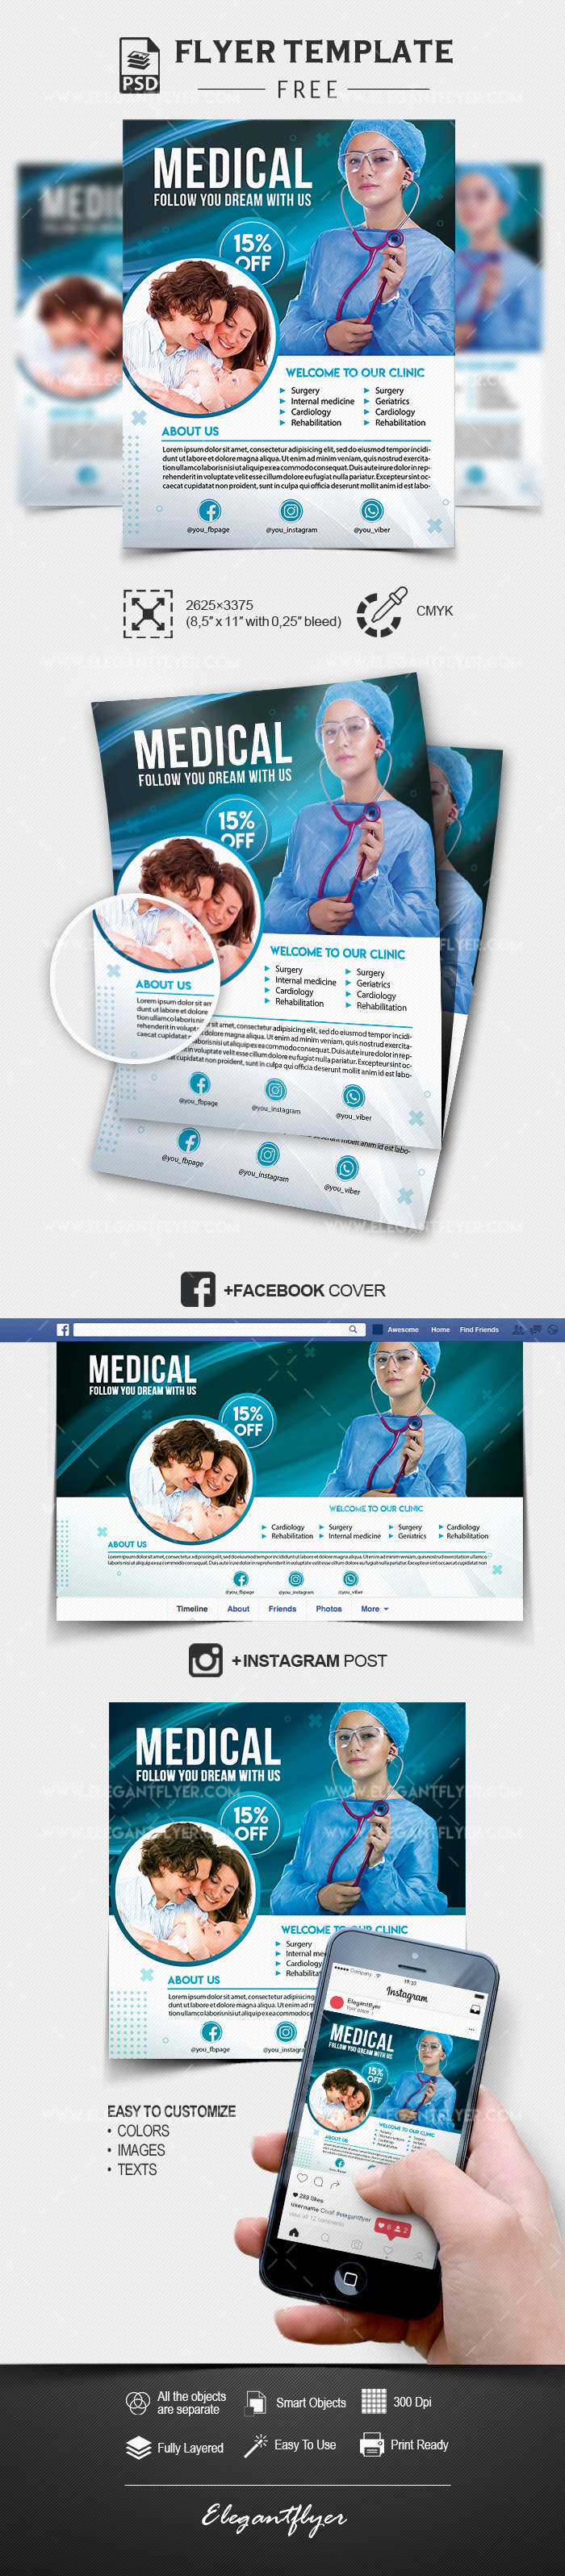 Medical Help - Free PSD Flyer Template + Facebook Cover ...